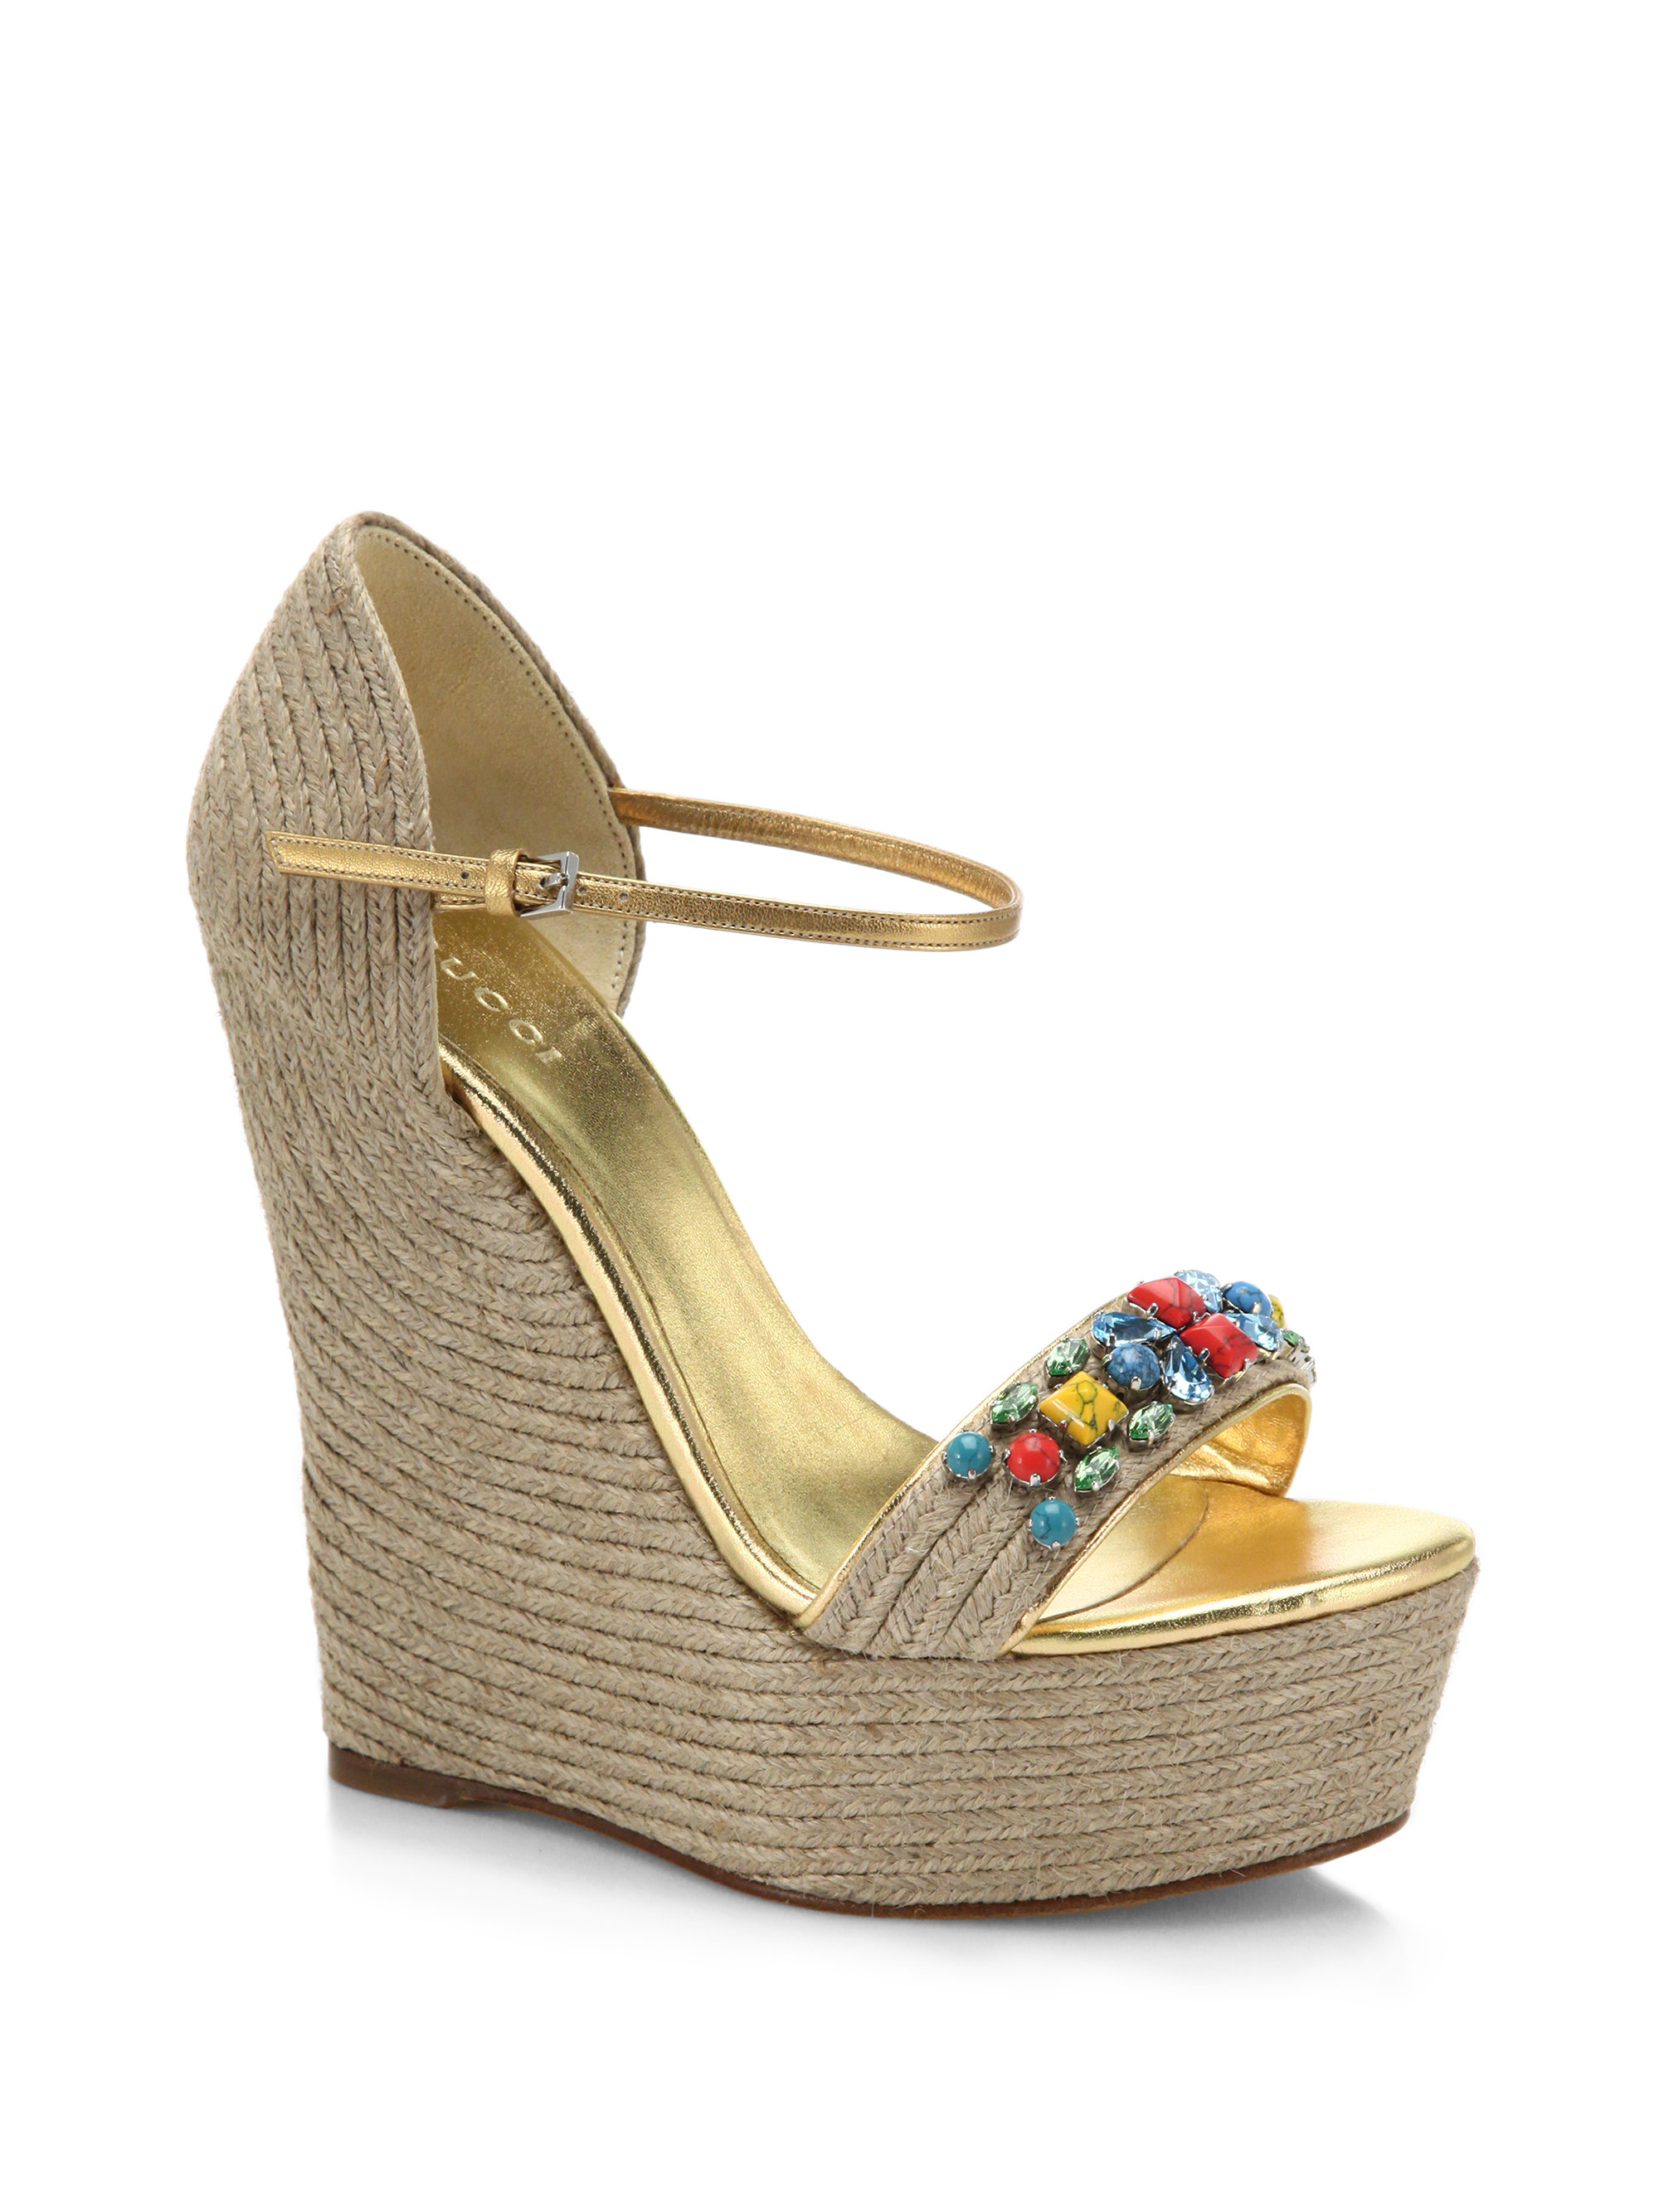 603d75d42b3 Lyst - Gucci Carolina Stone Espadrille Wedge Sandals in Natural